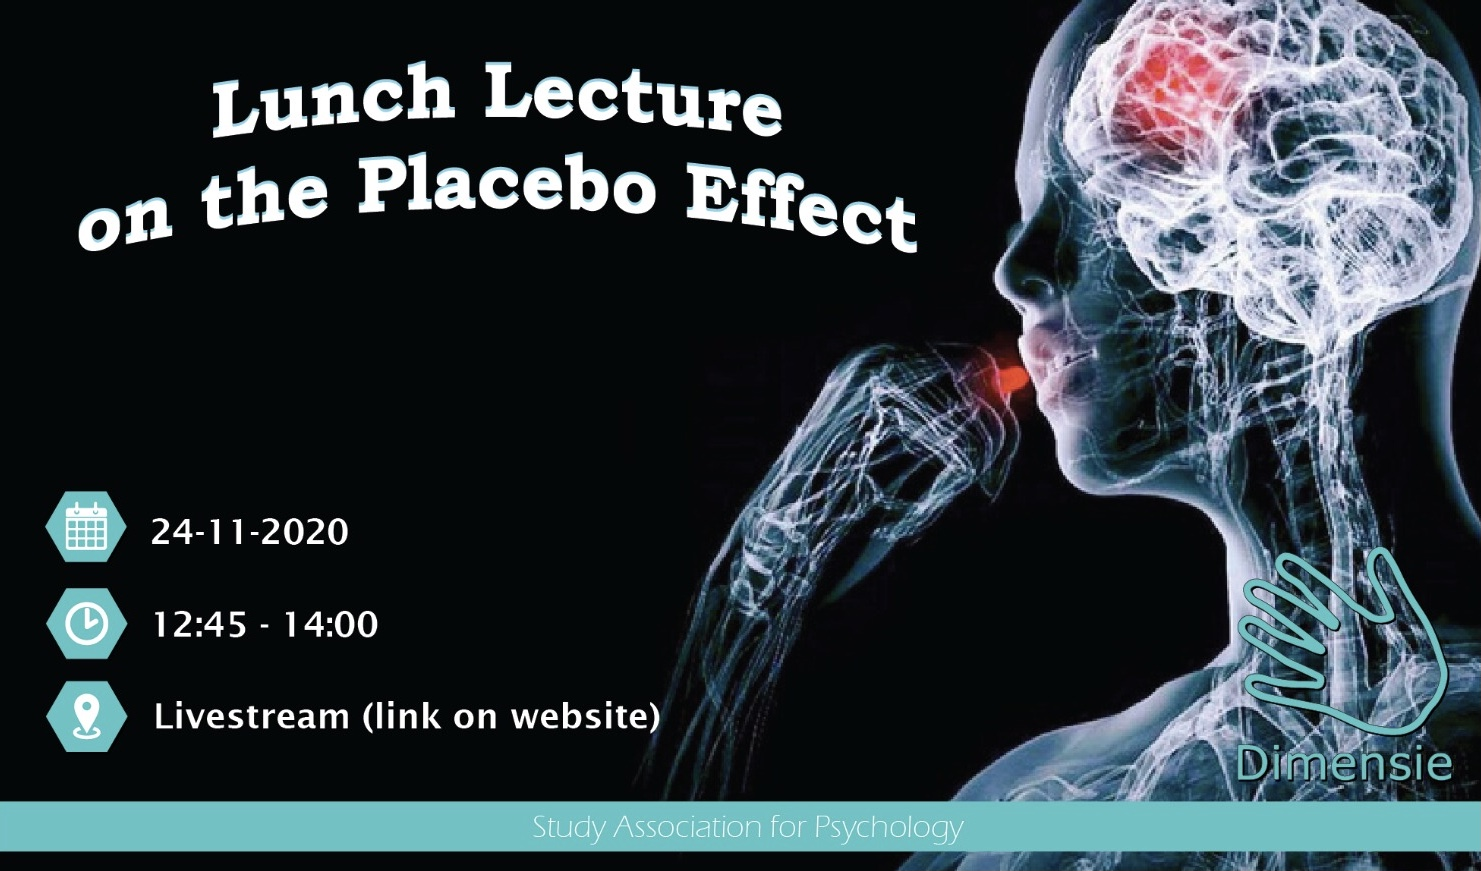 Lecture on the Placebo-Effect